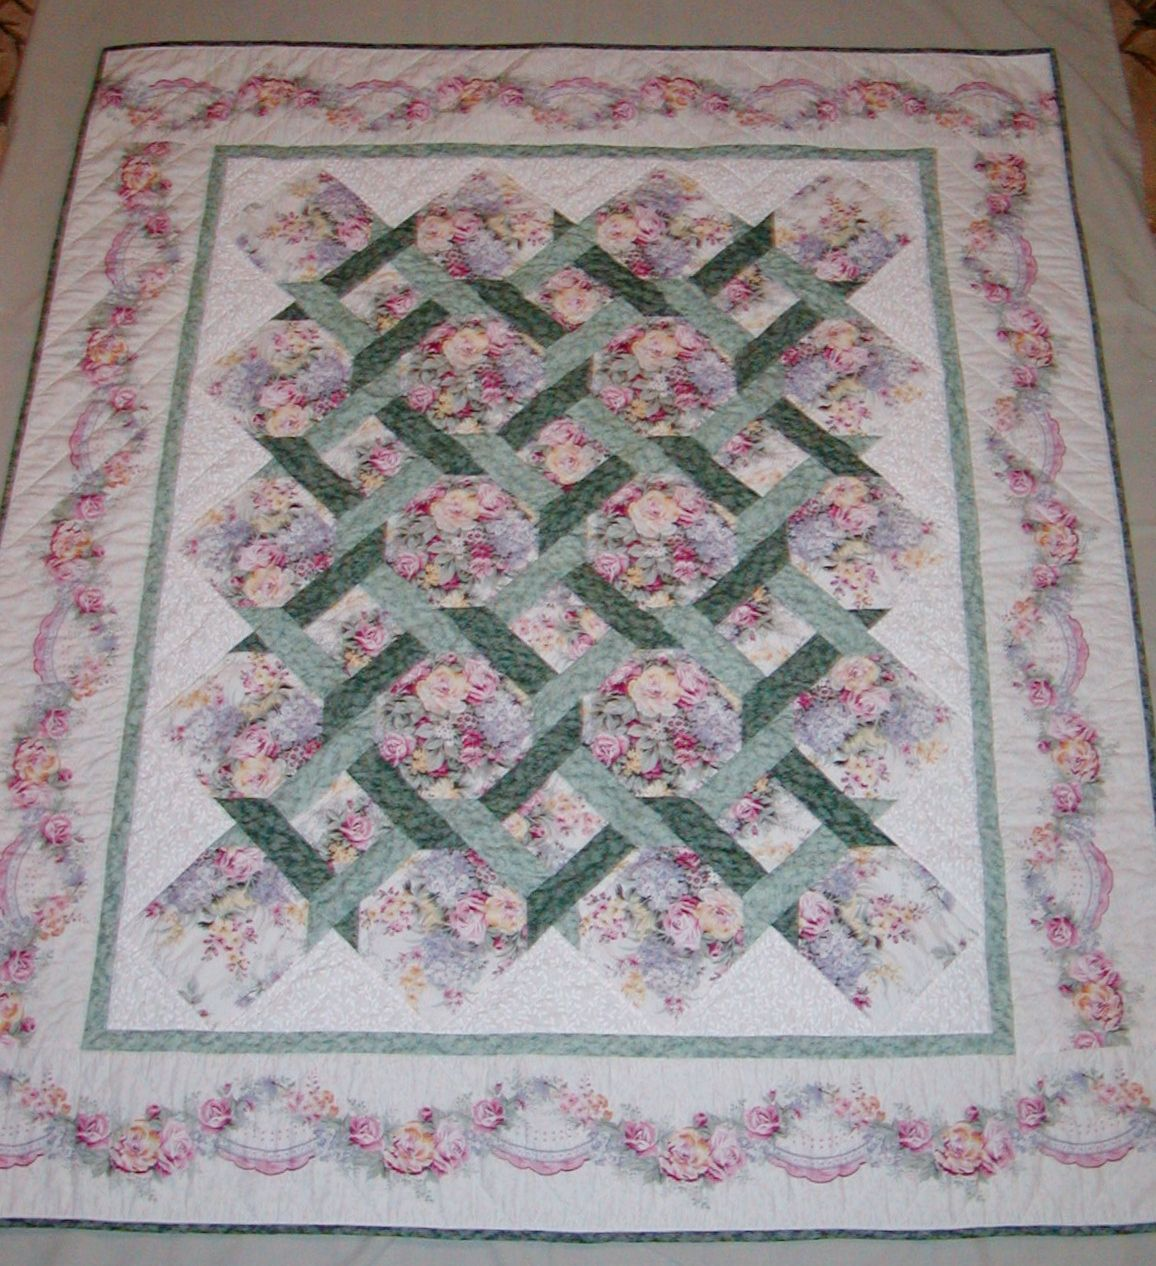 Garden trellis quilt quilts to make soon pinterest for Garden trellis designs quilt patterns